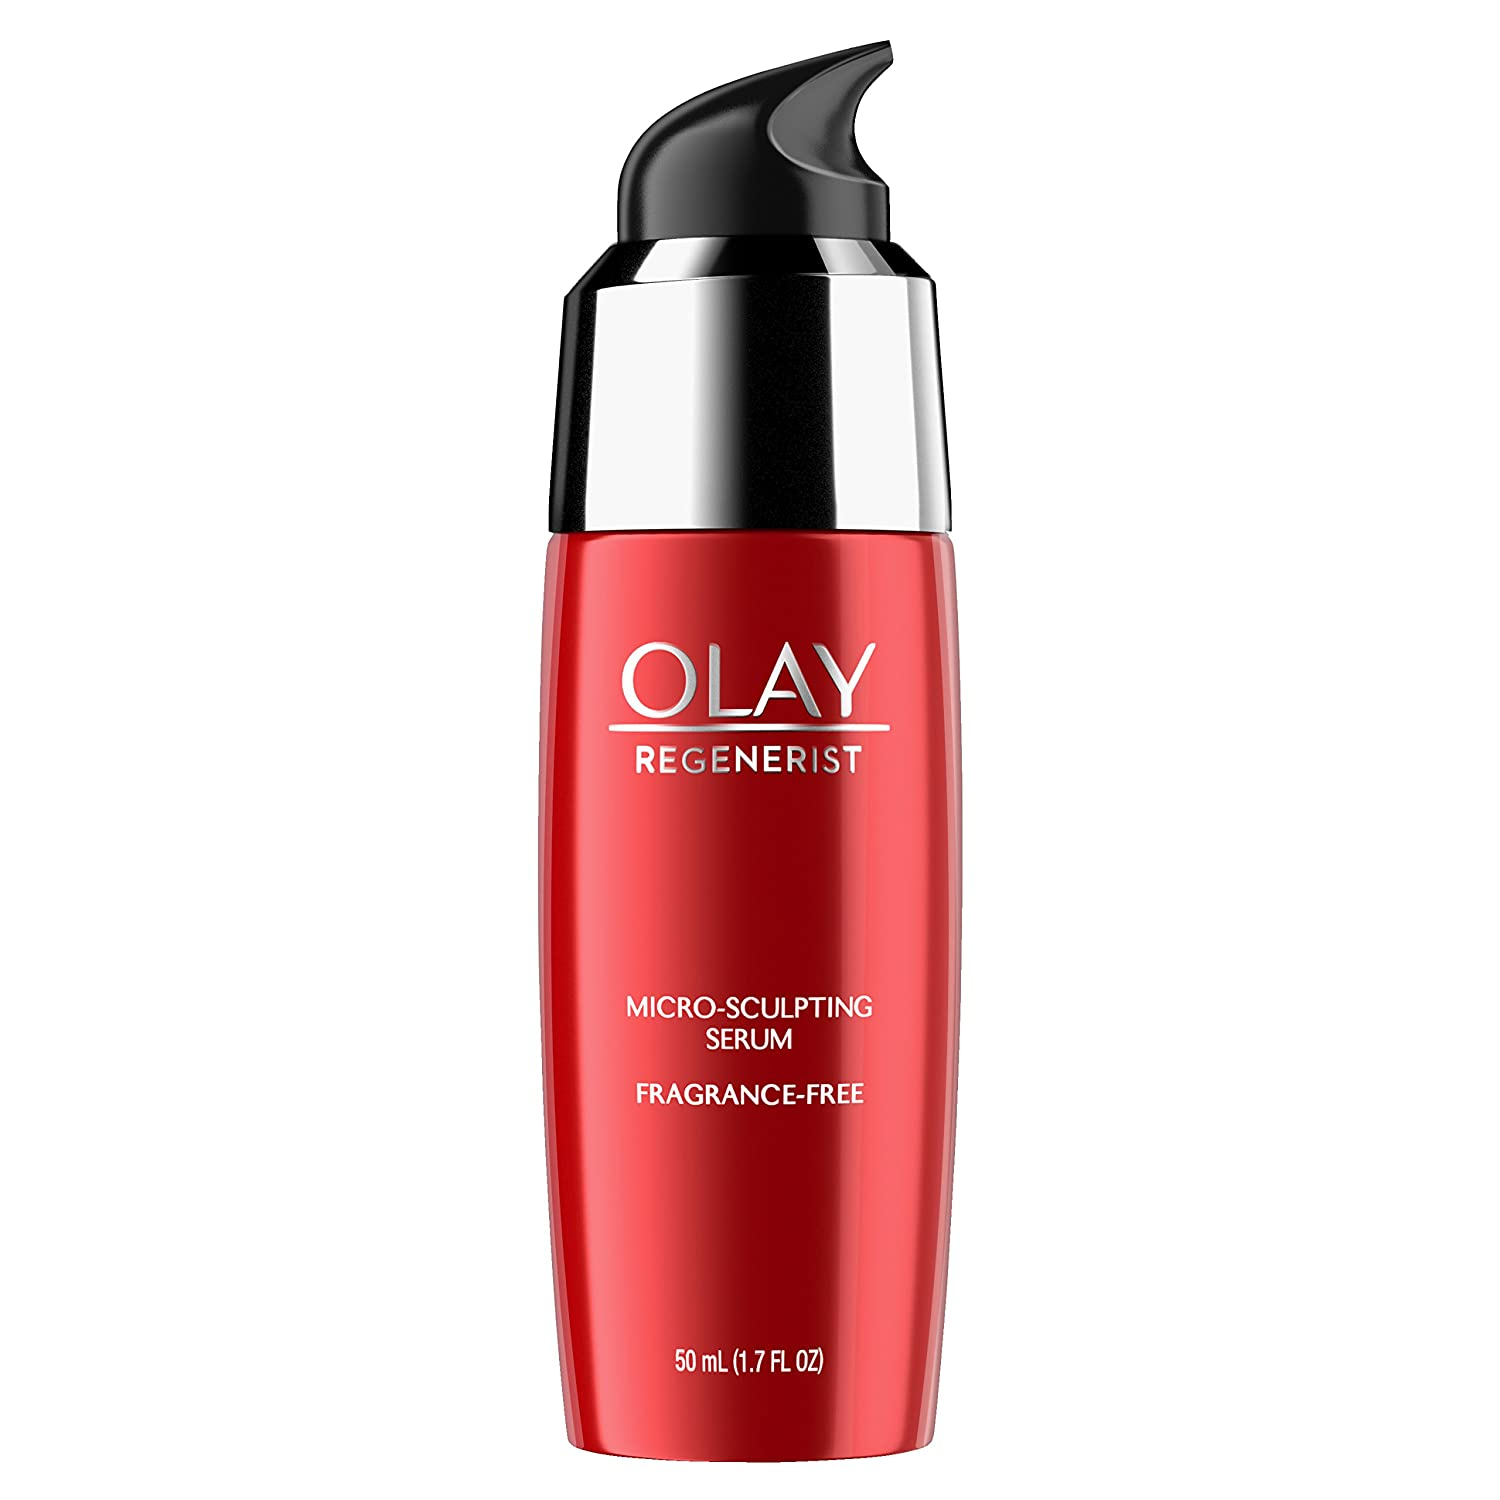 Olay Regenerist Micro-Sculpting Facial Serum